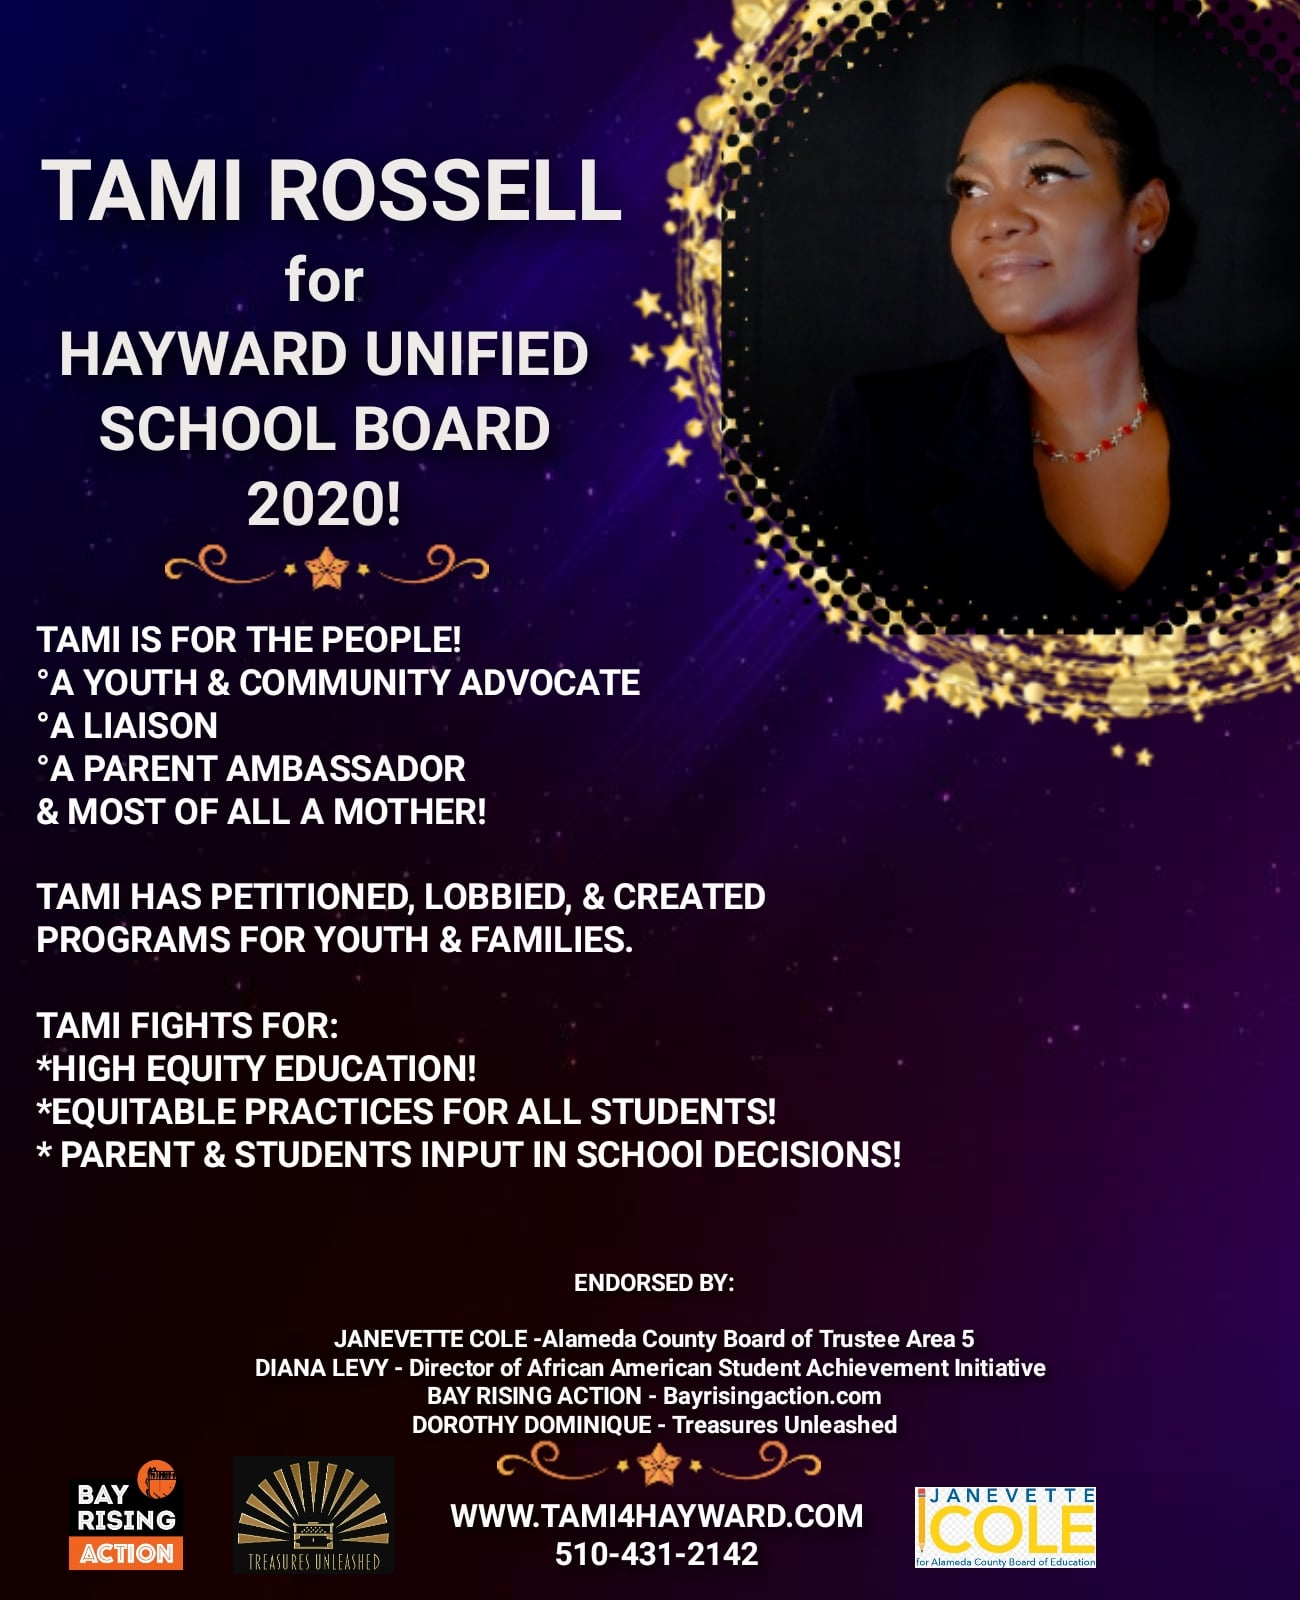 Tami Rossell Campaign Flyer Photoshoot!